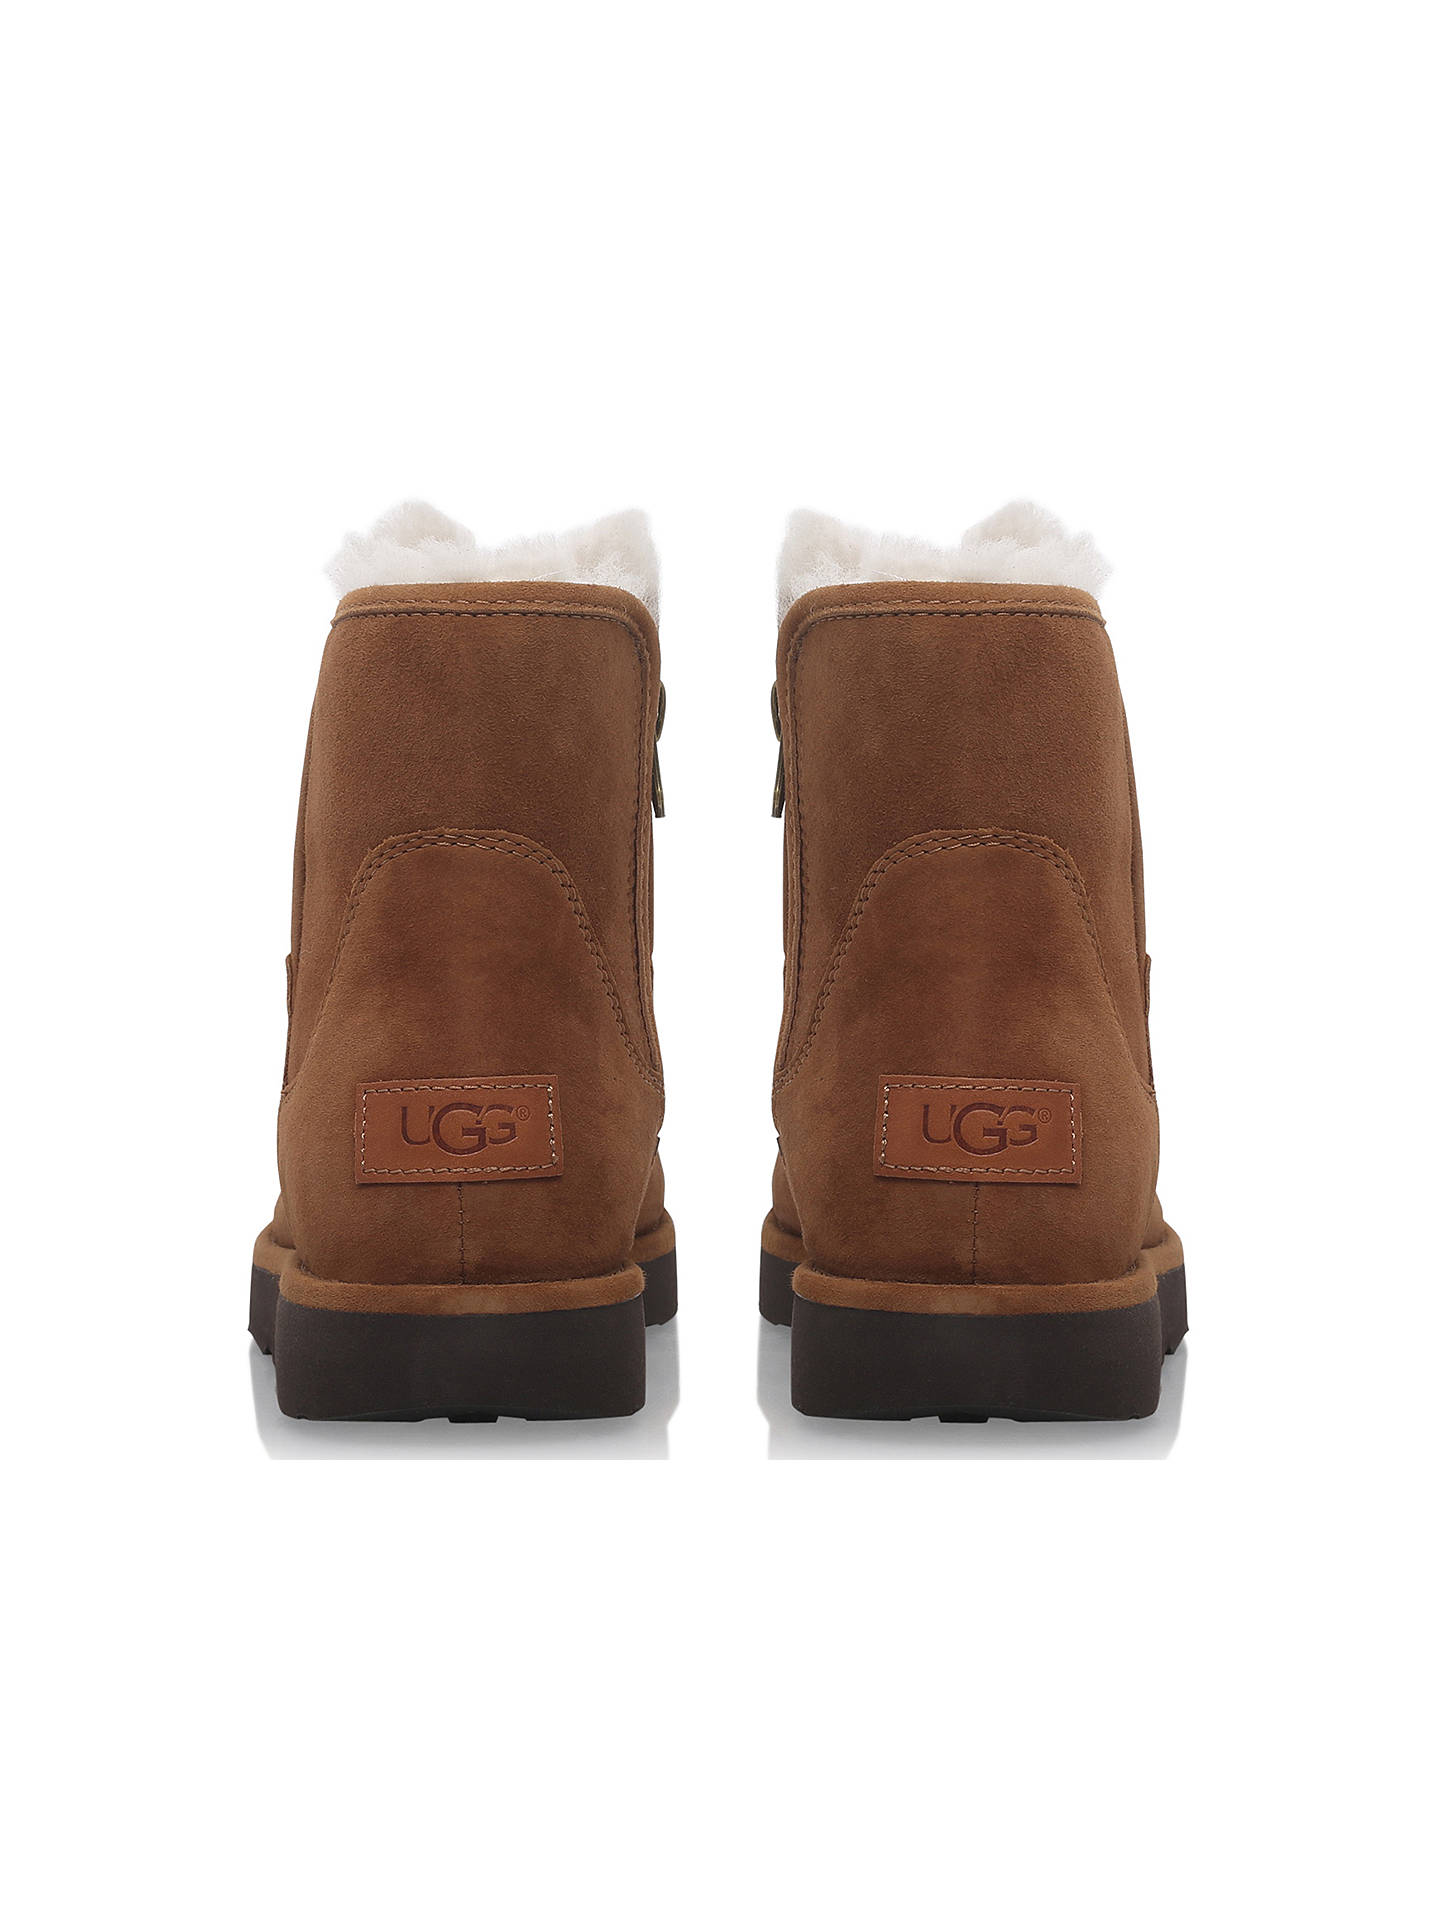 48b0ab1a8c8 UGG Abree Mini Ankle Boots at John Lewis & Partners